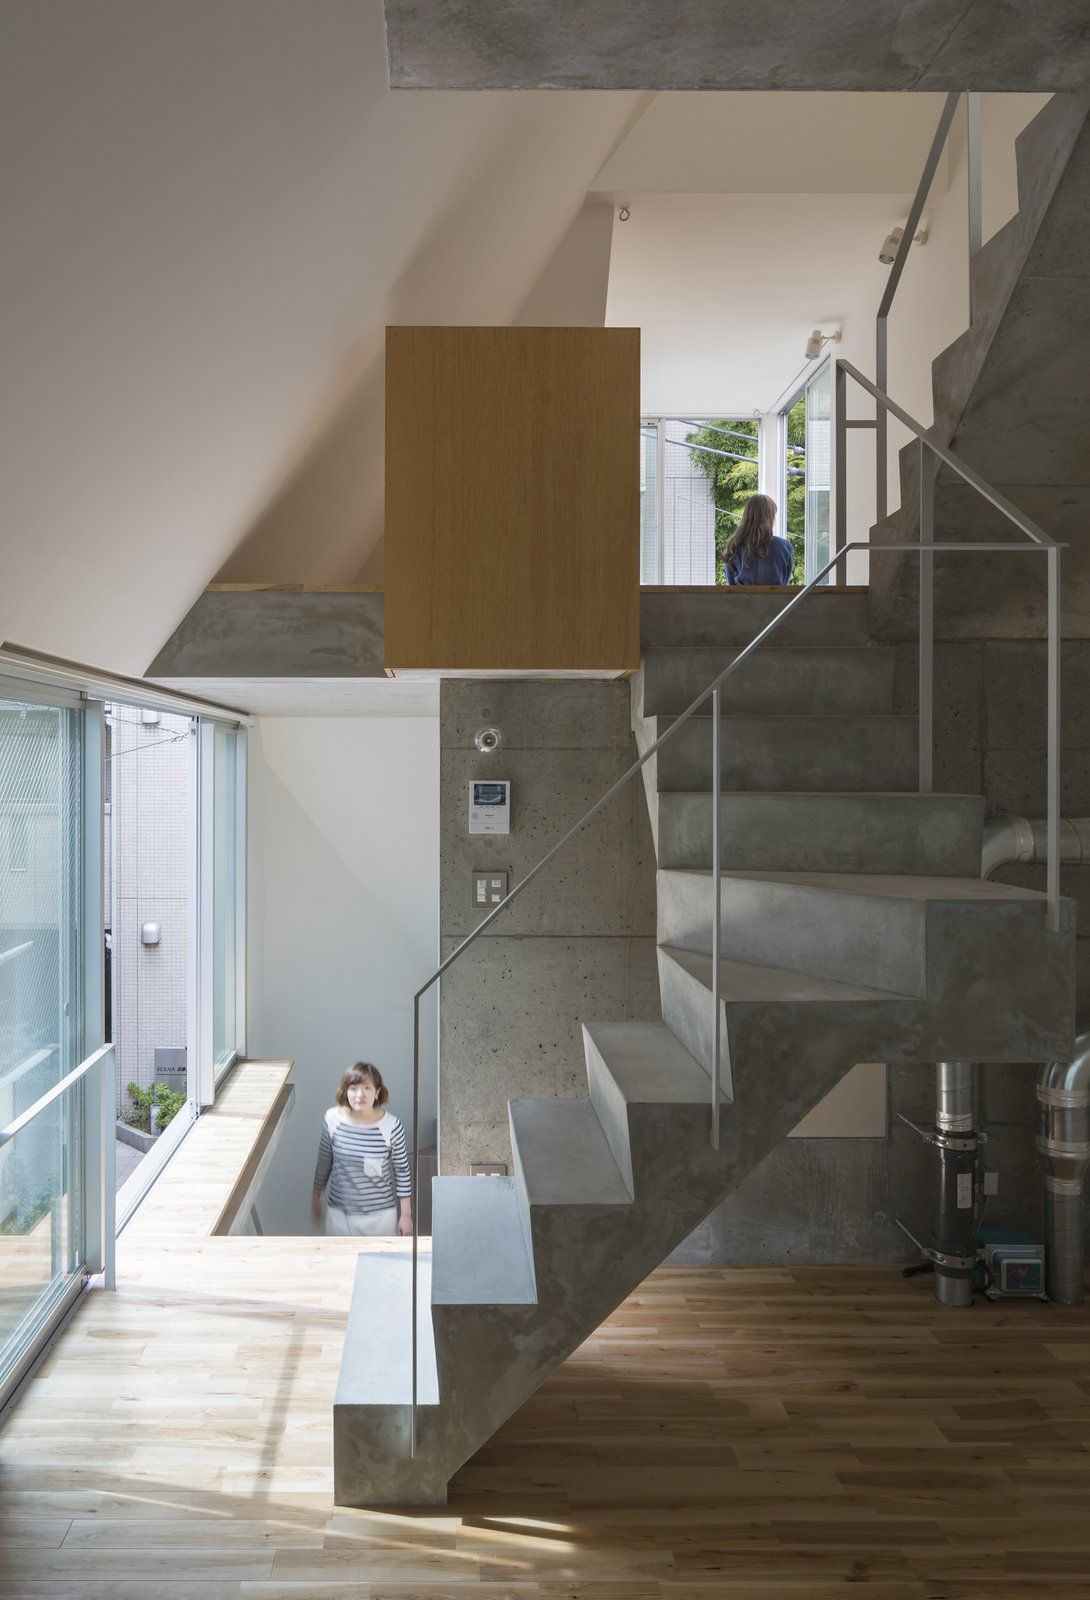 Staircase, Concrete, and Metal House in Tokyo is a minimal residence designed by Ako Nagao + miCo for a couple who required a music studio. The site is located between reinforced concrete mid-to-high-rise apartments and an old wooden housing area. The volume needed to be closed and  Best Staircase Photos from House in Tokyo by Ako Nagao + miCo